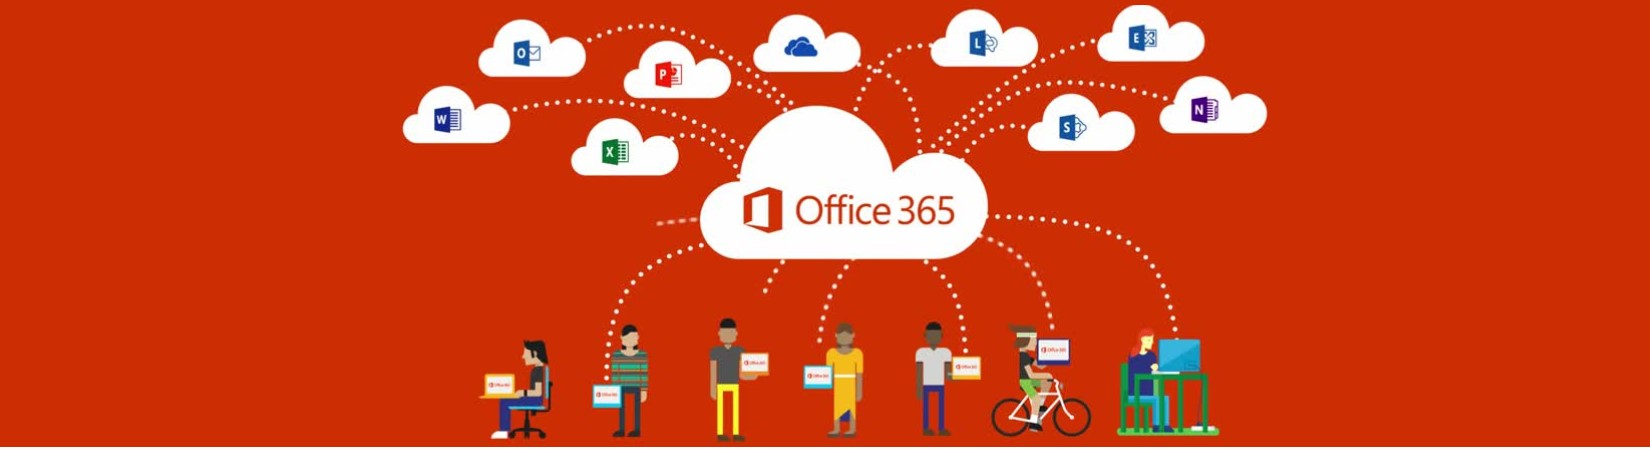 get help with office 365  - how do i